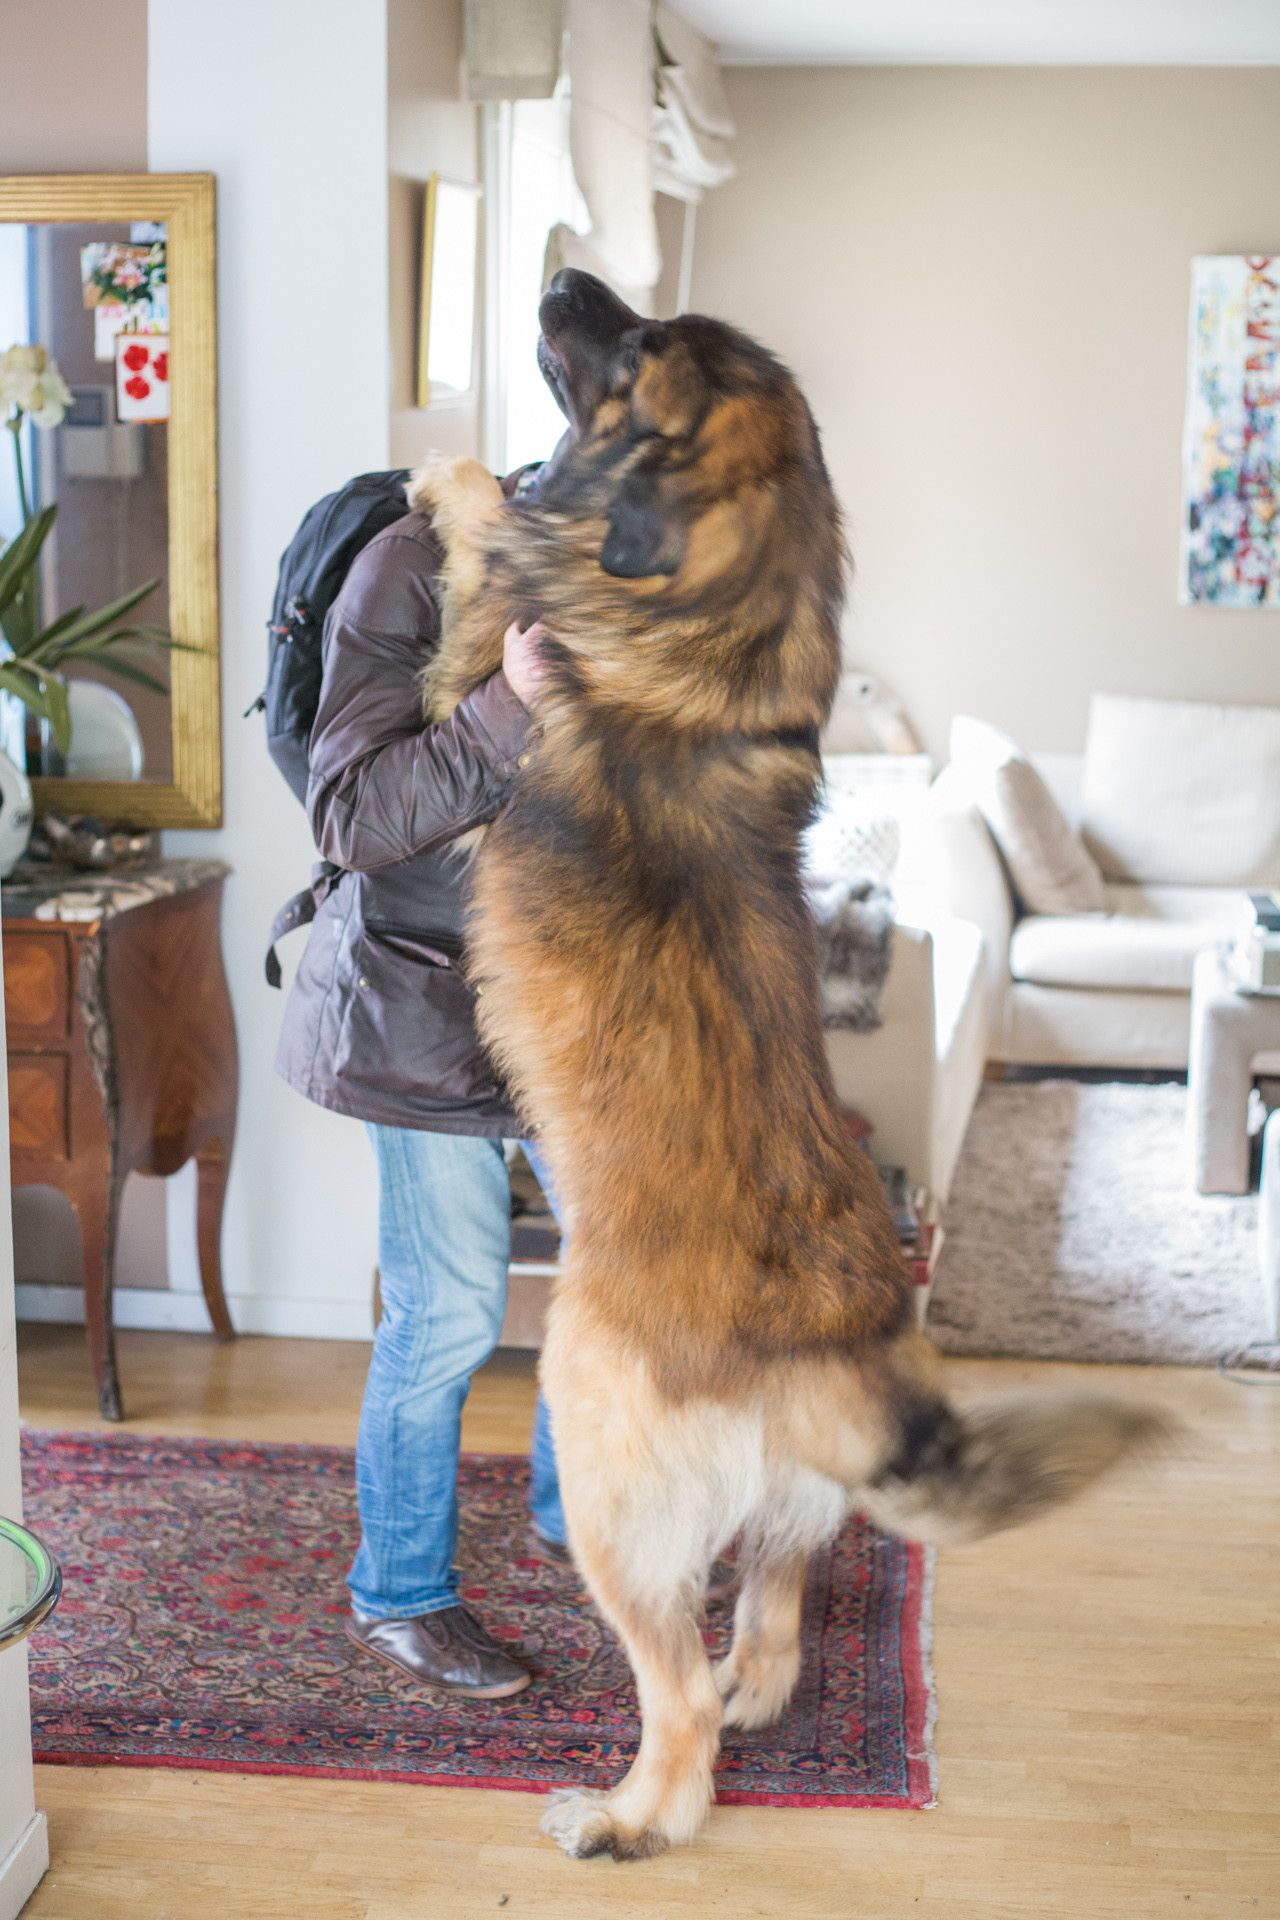 This is how my friend's dog greets guests